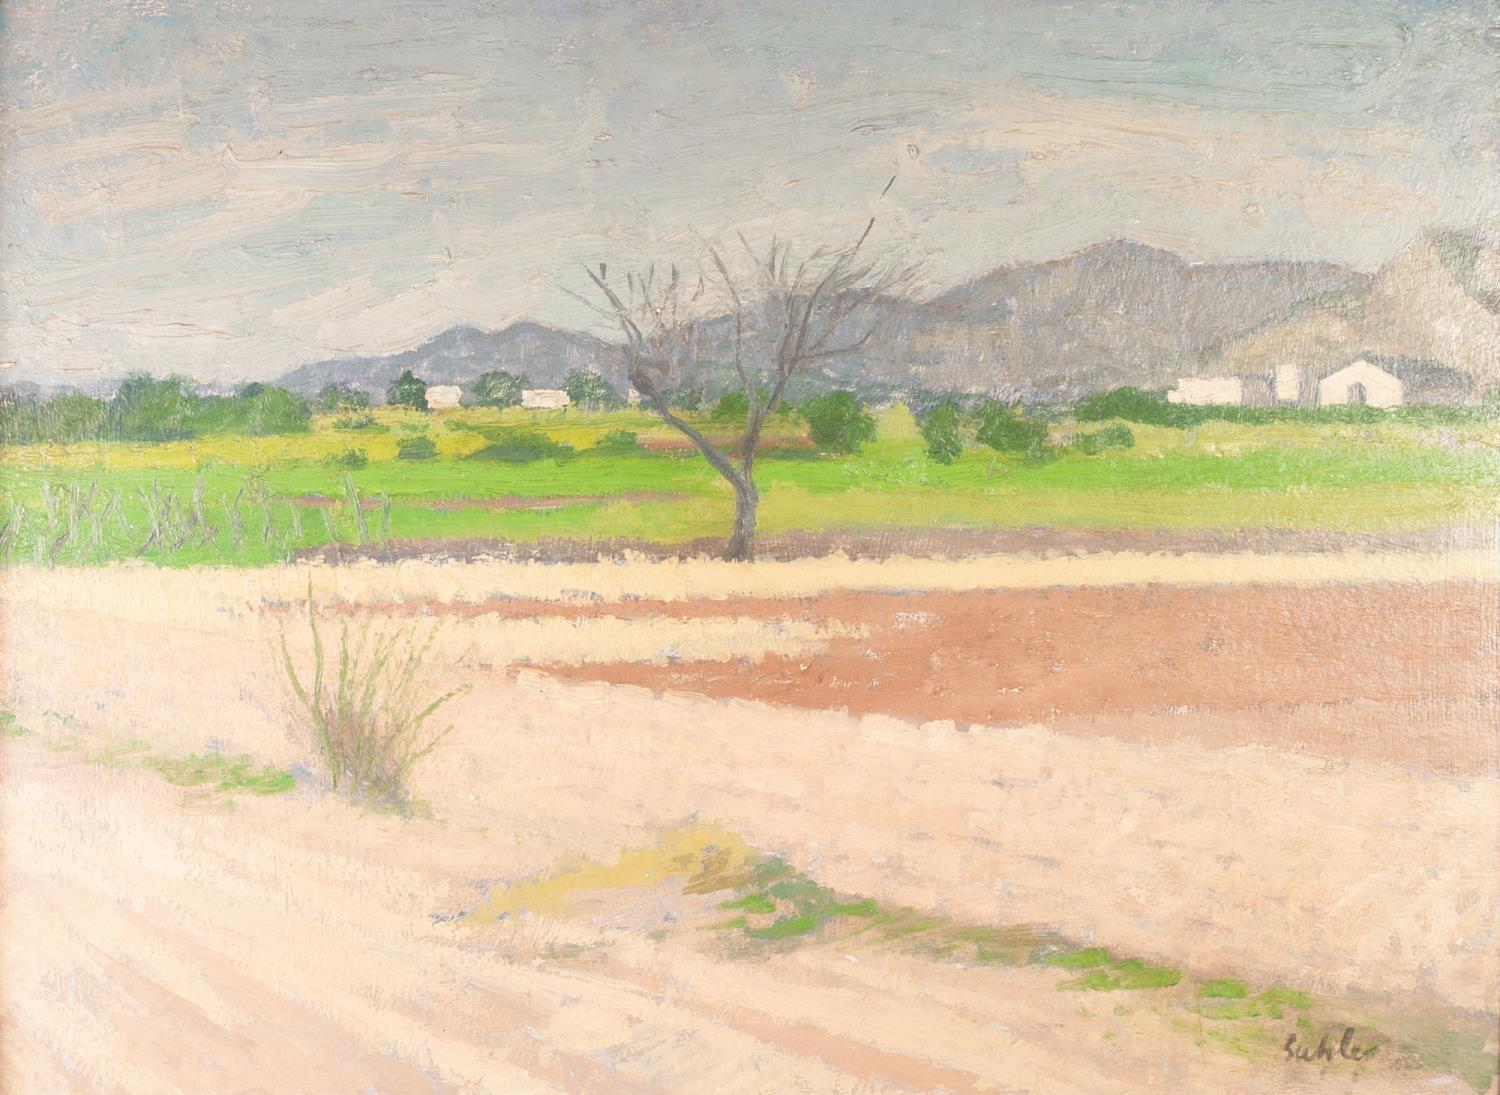 Lot 279 - ROBERT BUHLER (1916-1989) OIL ON BOARD ?Benicassim, nr. Castellone Depa Plana, Spain? Signed, titled